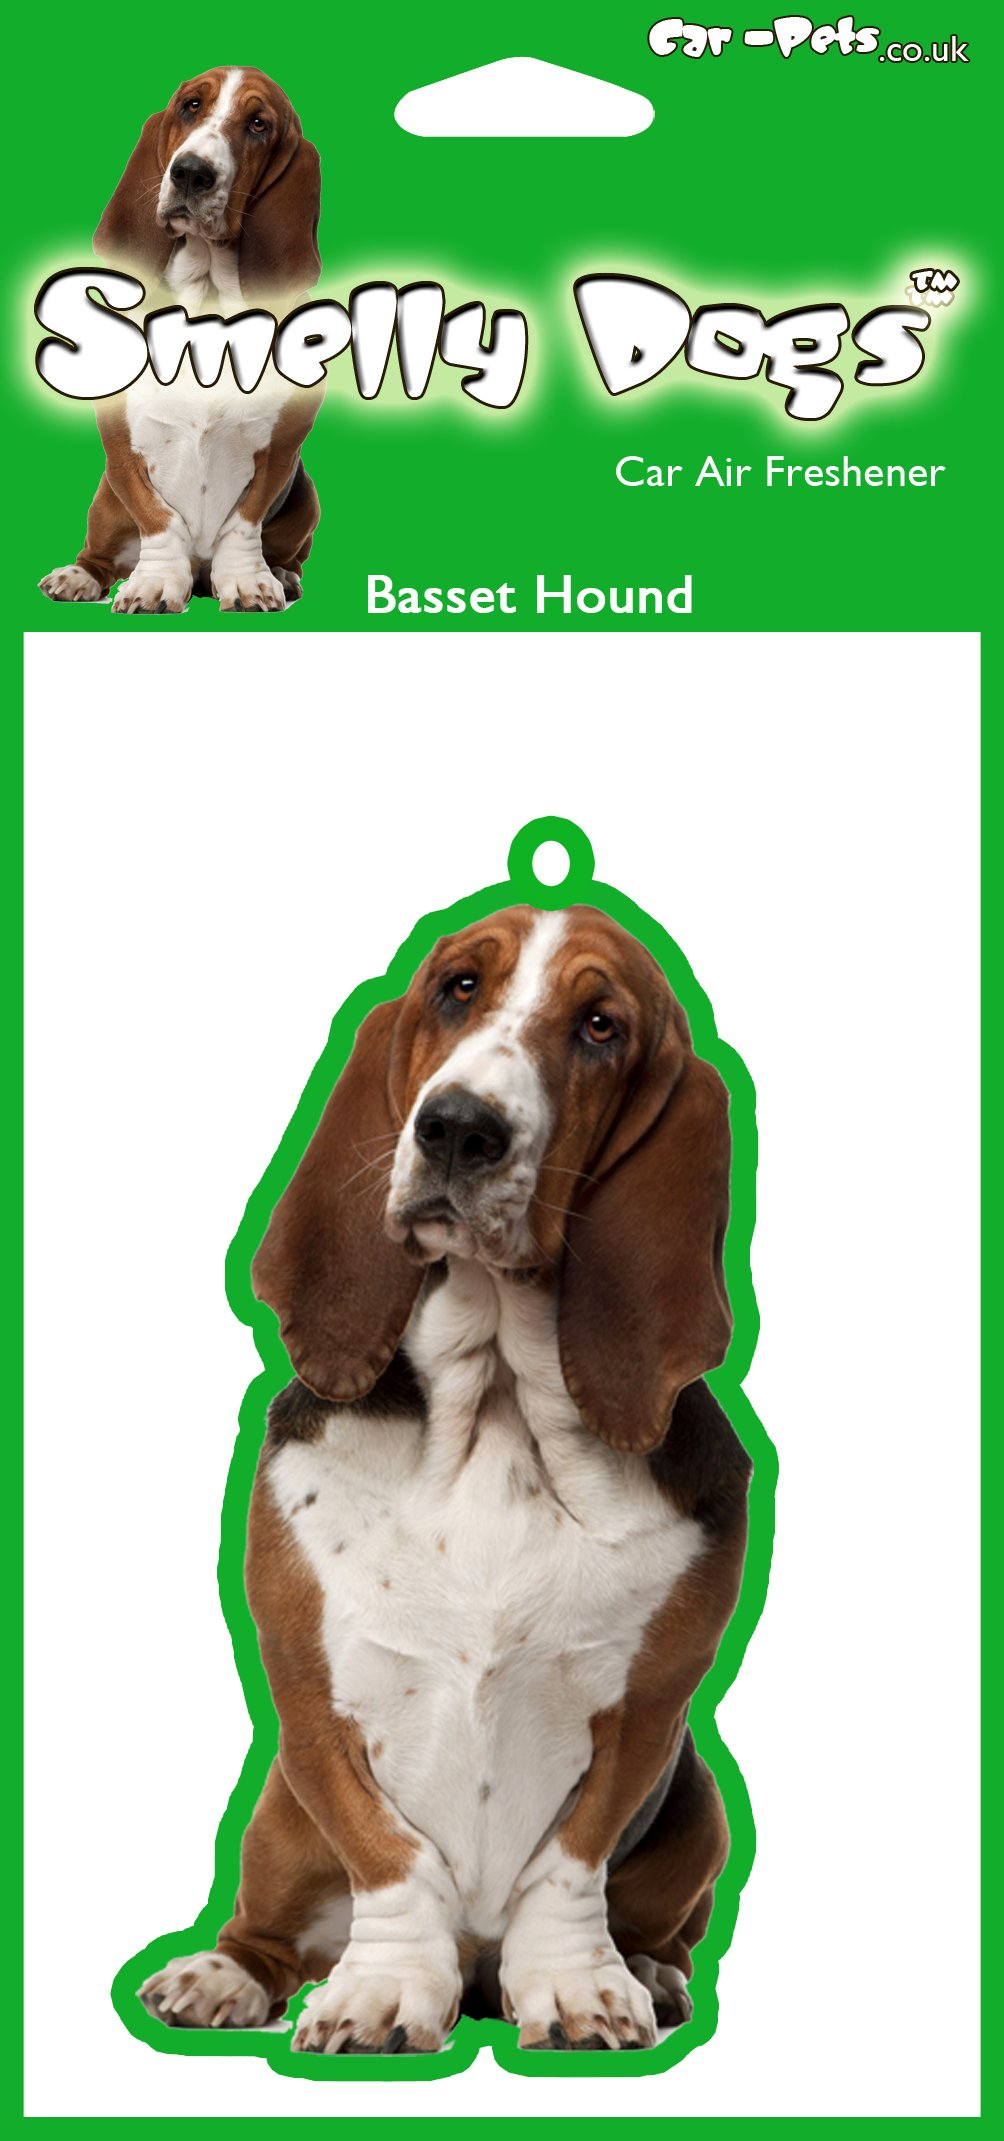 Air Fresheners Basset Hound Dog – 2 x Delightful Car